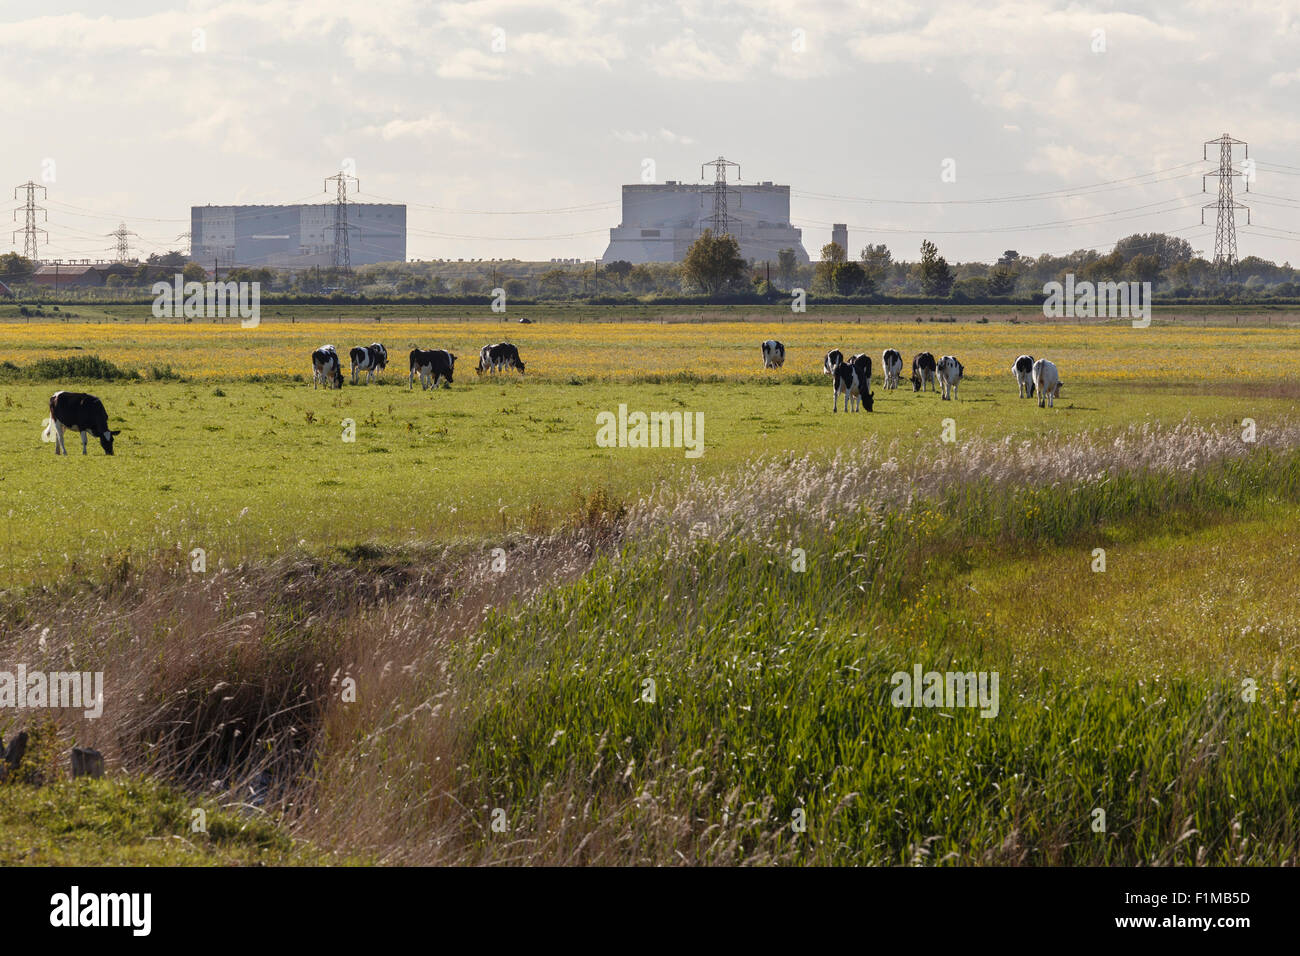 Hinkely Point nuclear power plant. A station to the left, B station to the right. From Steart salt marsh nature - Stock Image